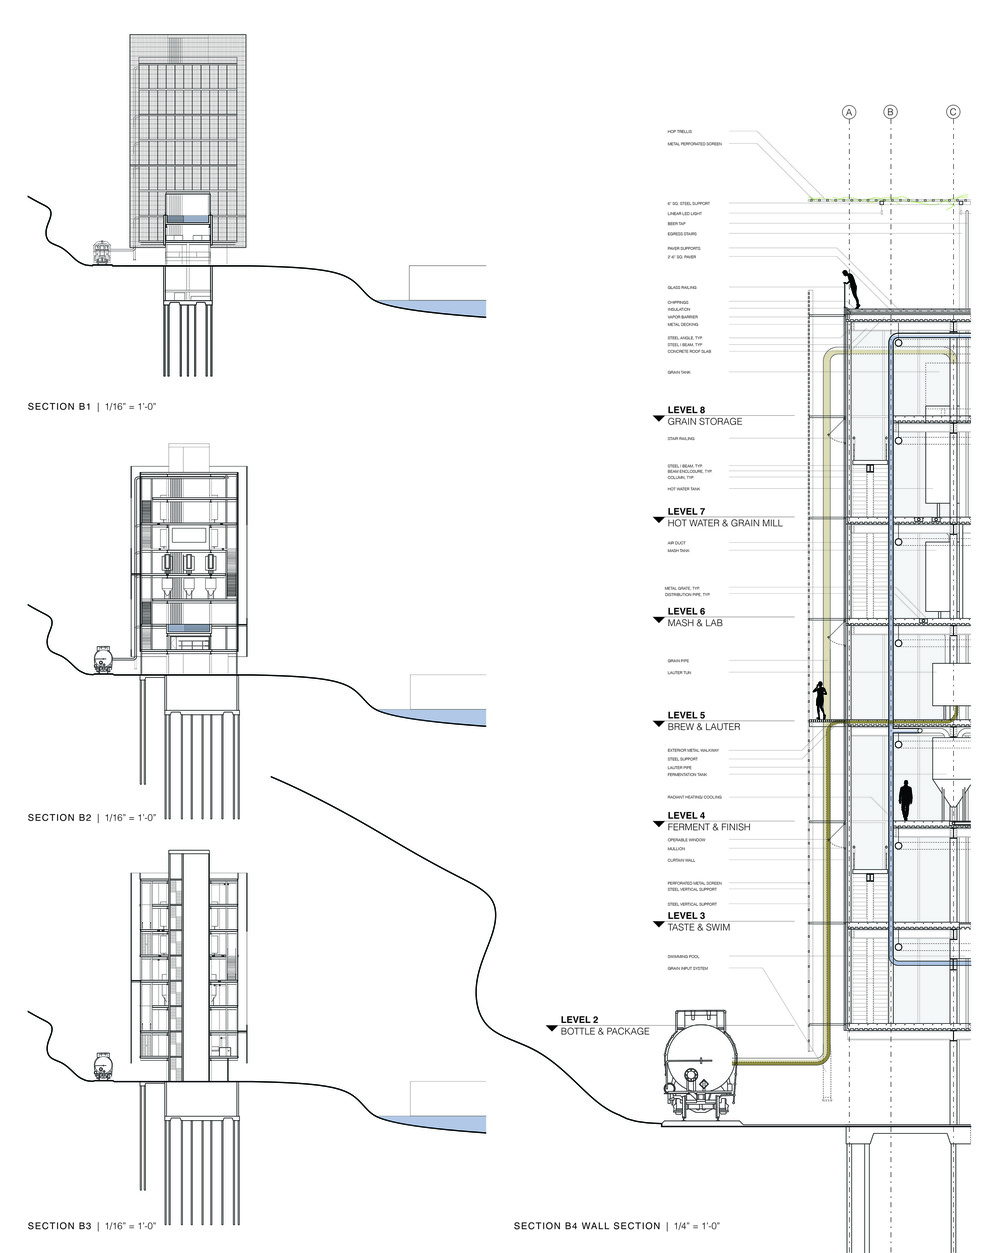 10_Vertical_Brewery_Alejandra_Fernandez_Sections_of_Brewery.jpg